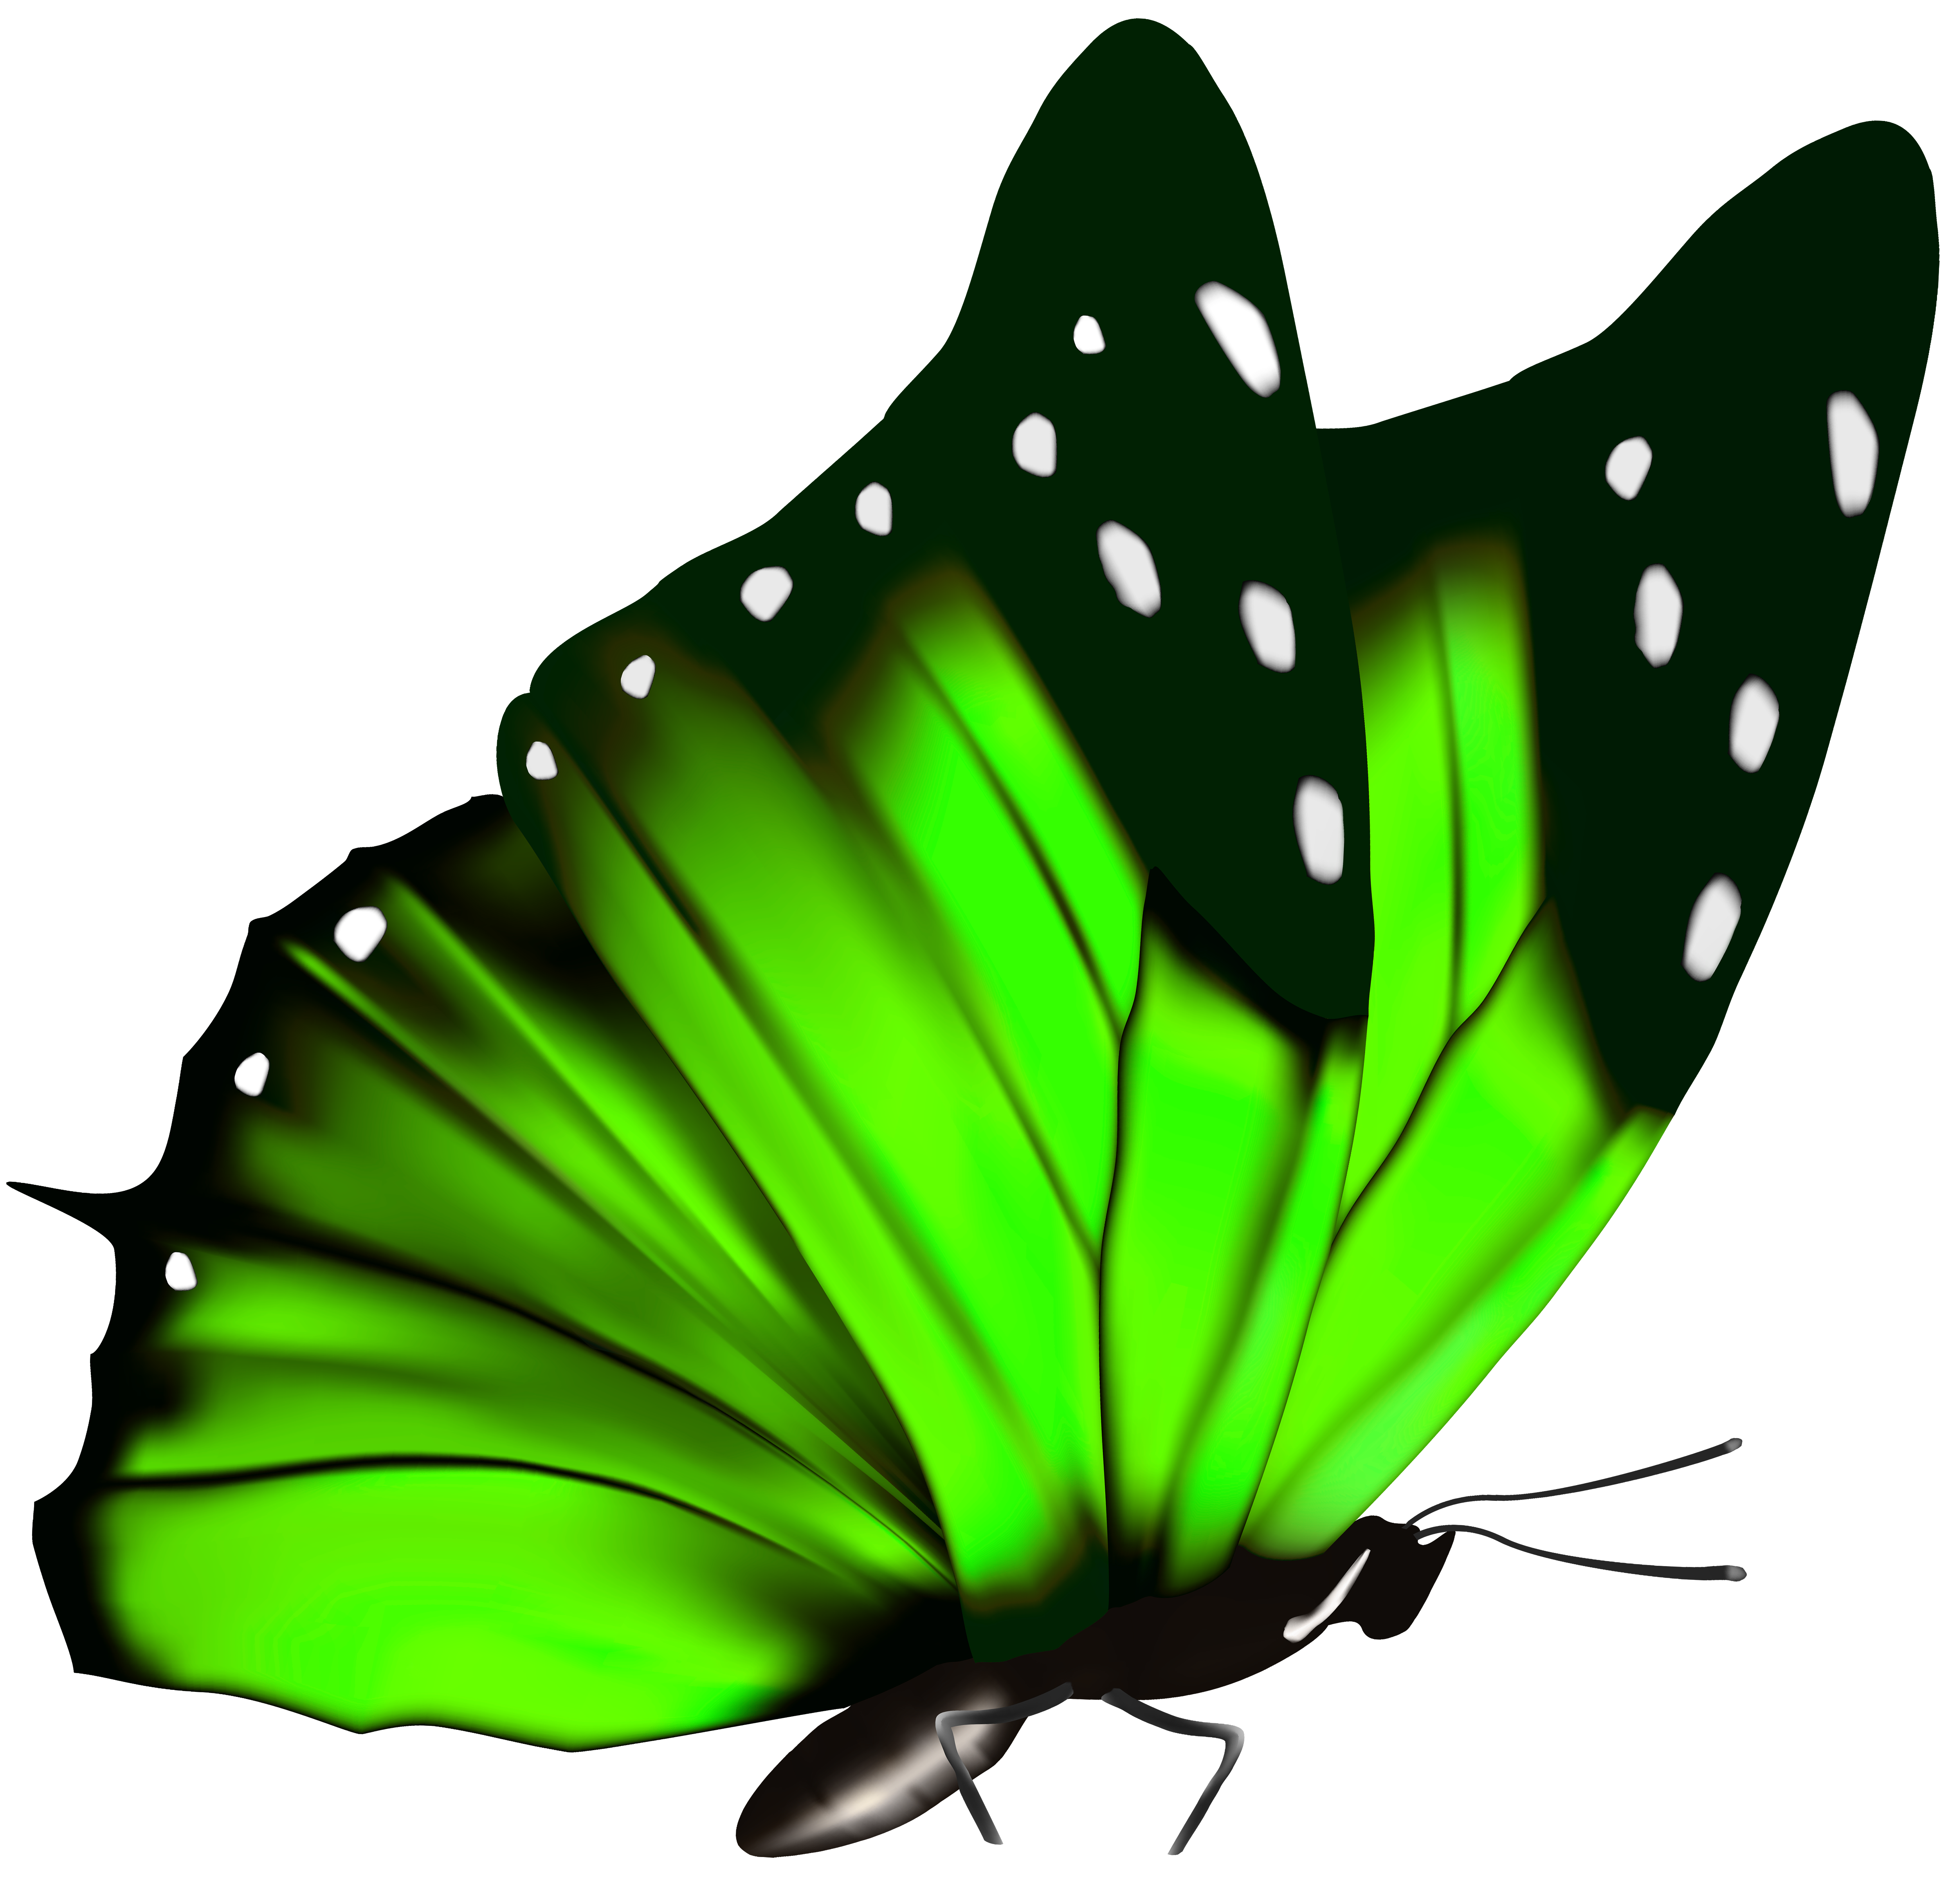 Steampunk clipart flight wing. Green butterfly png image